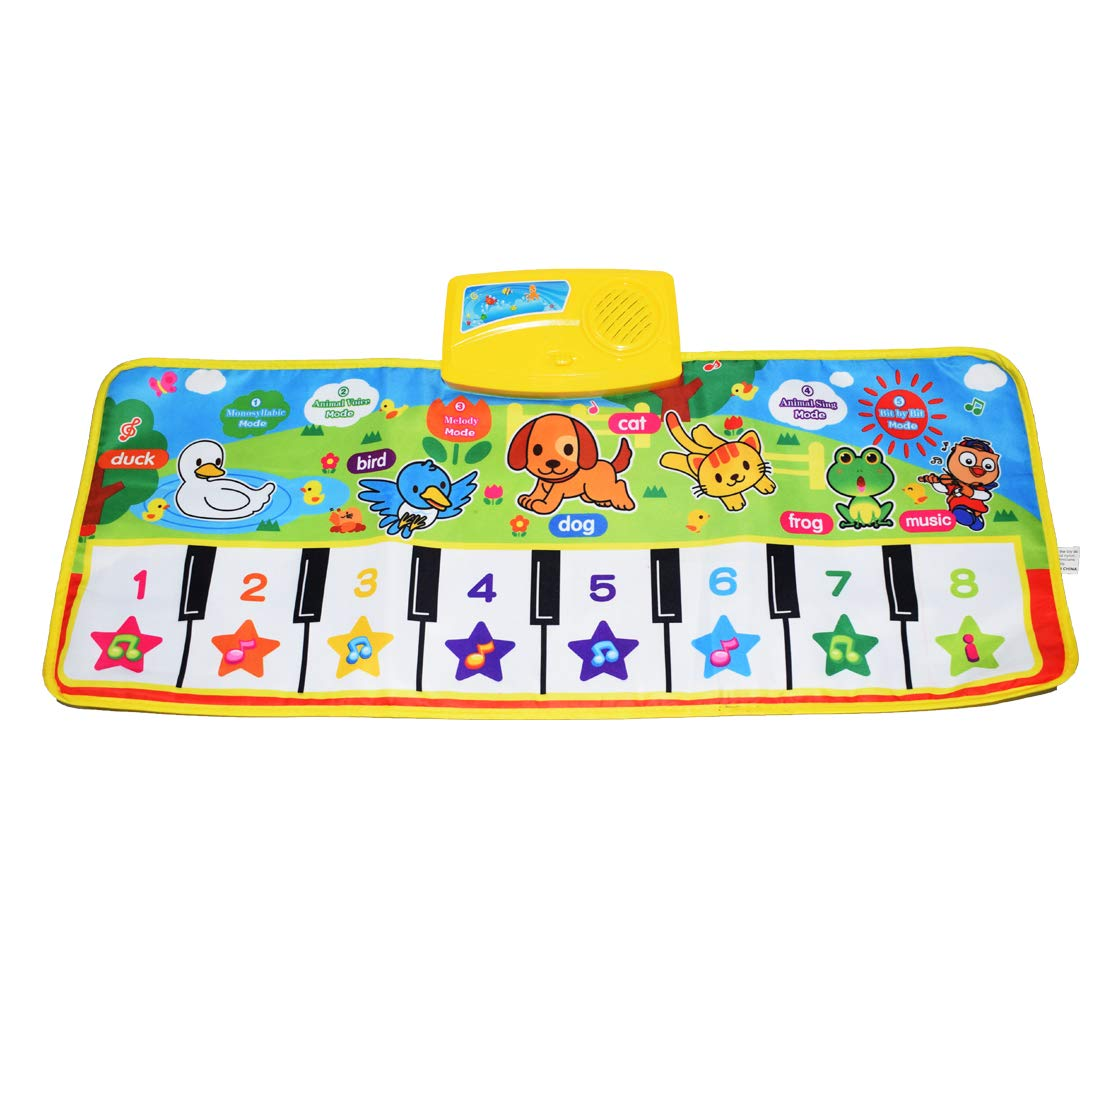 Fresh Household Piano Mat, Kids Keyboard Mat Playmat Education Toy Birthday Christmas Easter Day Gift for Kids Boys Girls by Fresh Household